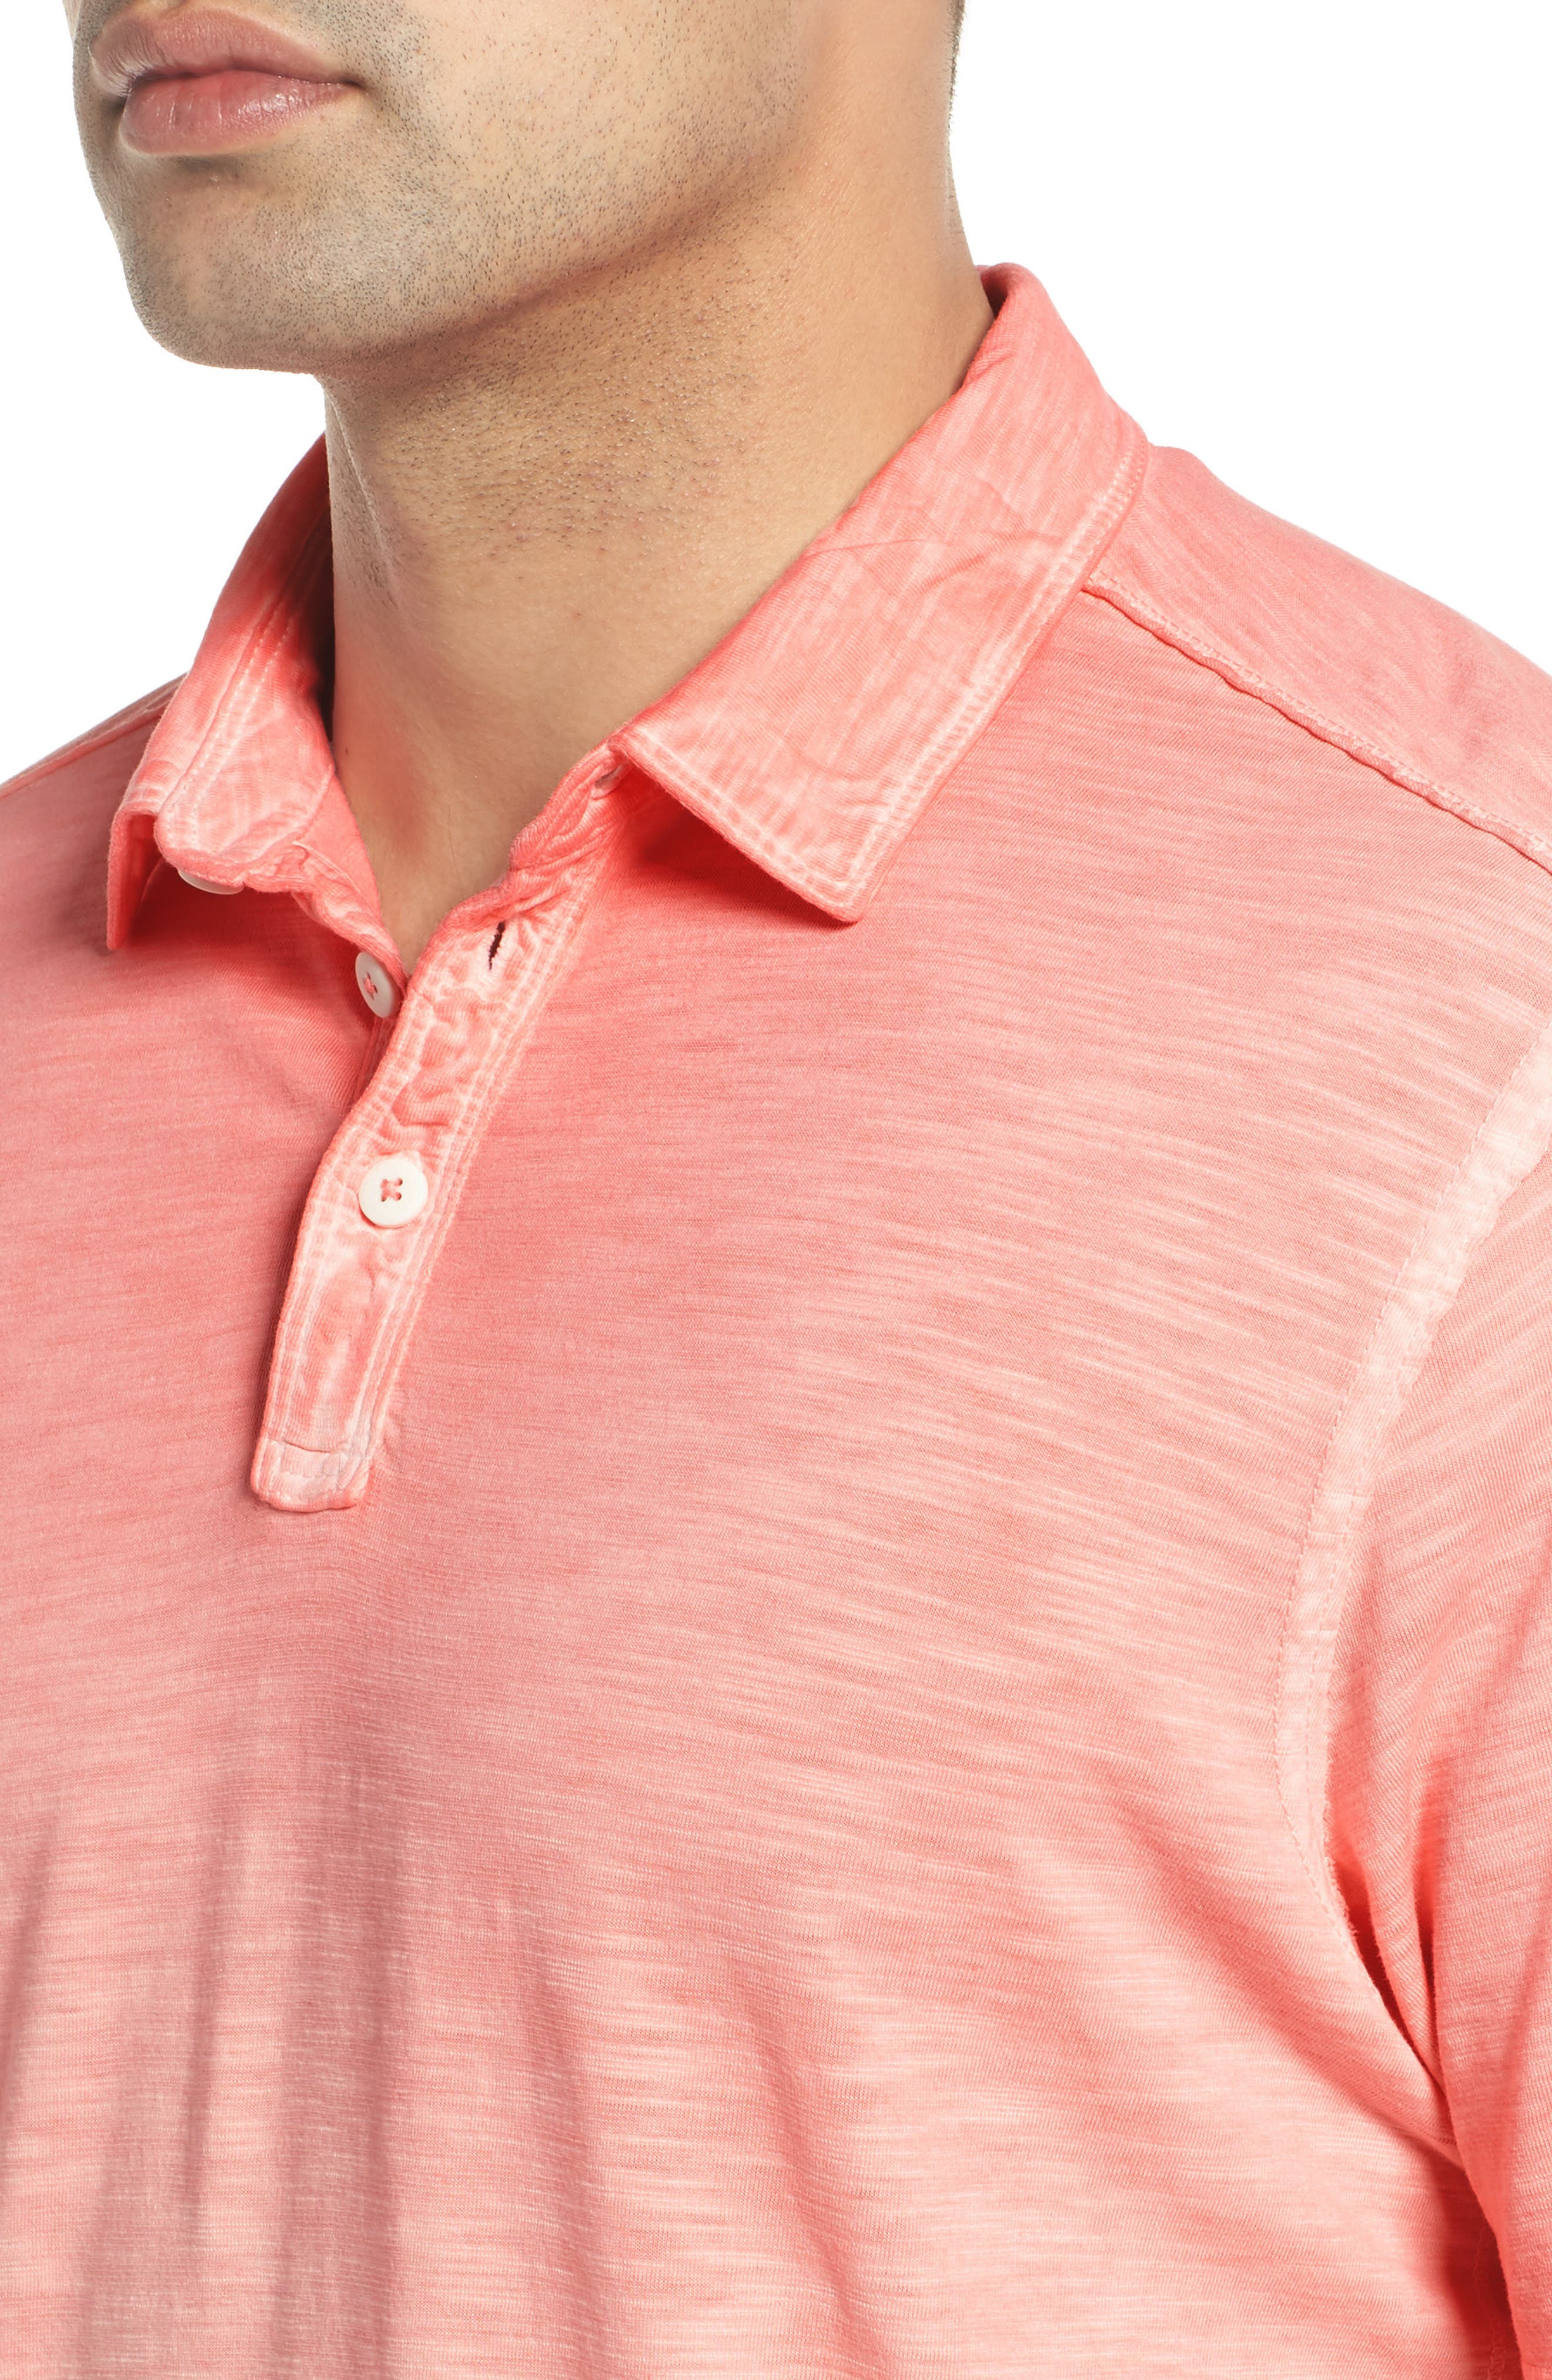 Suncoast Shores Slub Jersey Polo,                             Alternate thumbnail 4, color,                             Electric Coral